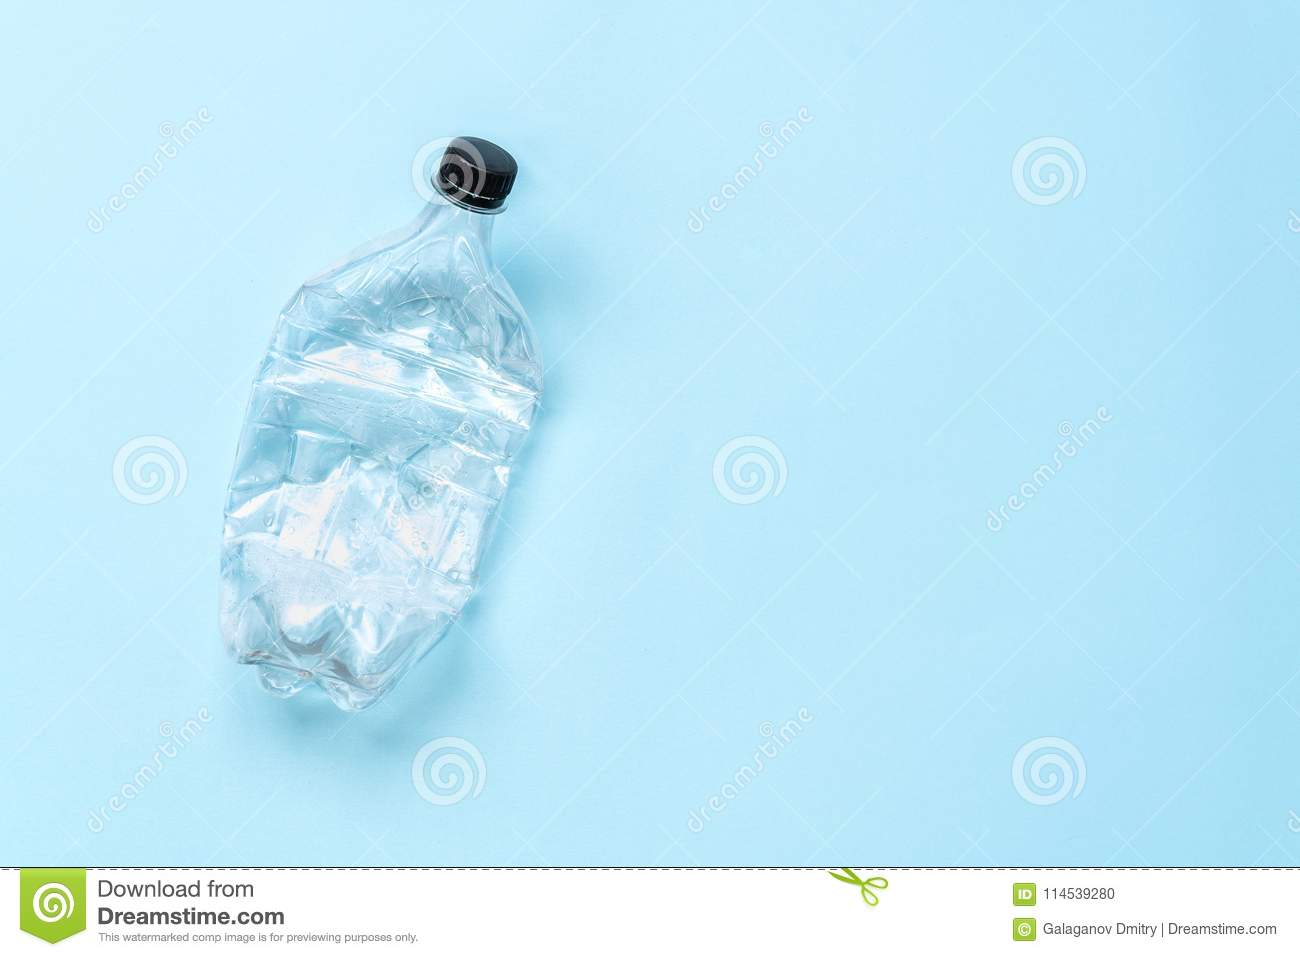 Plastic empty rumpled bottle from under the water on a blue background.